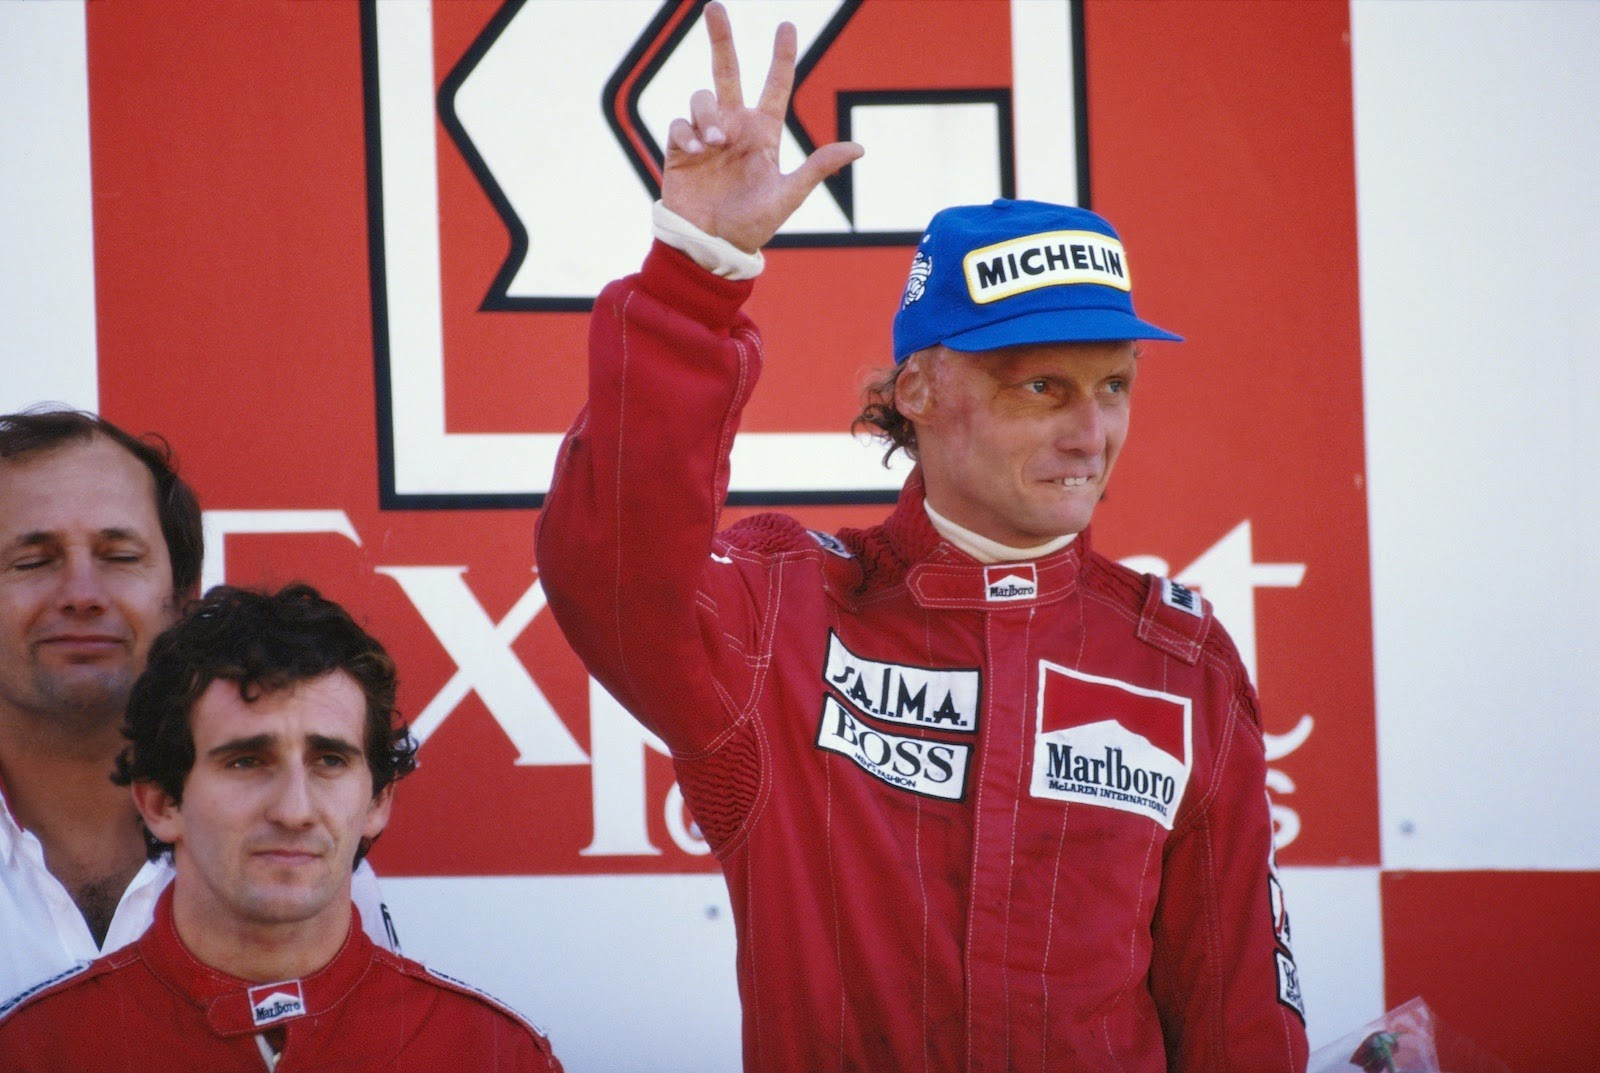 lauda+estoril+1984.jpg